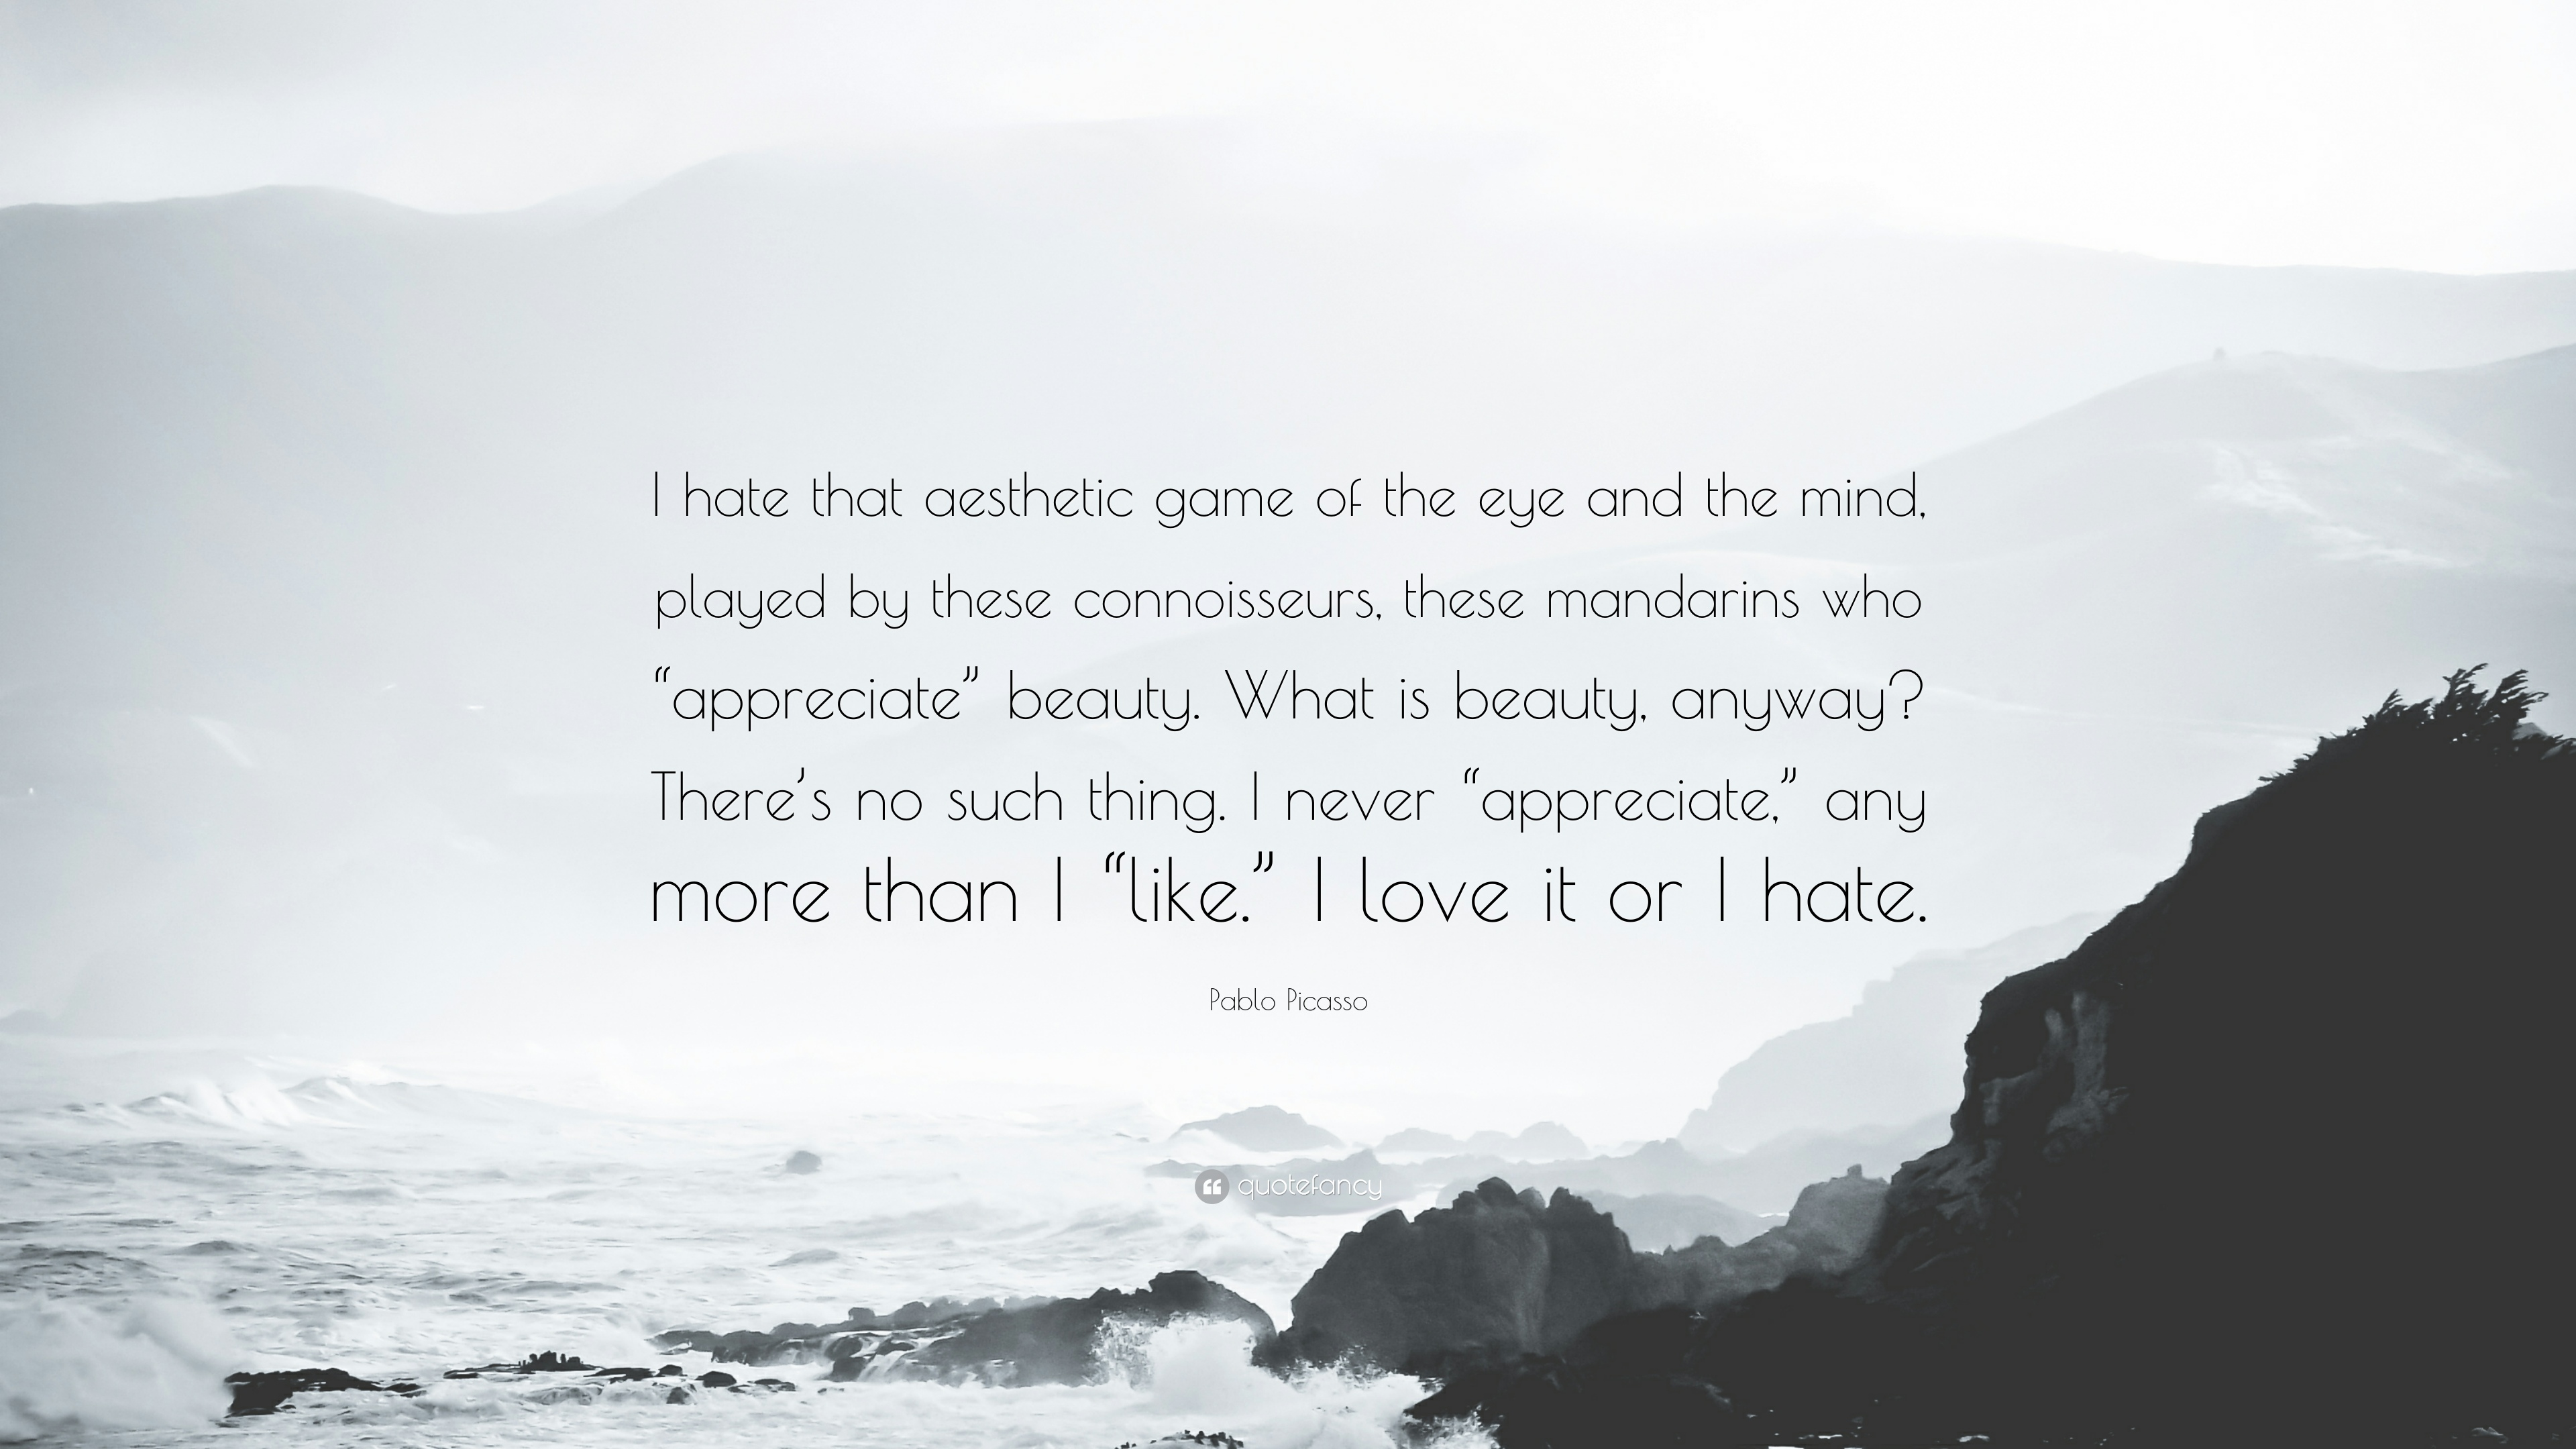 Most Inspiring Wallpaper Love Aesthetic - 173061-Pablo-Picasso-Quote-I-hate-that-aesthetic-game-of-the-eye-and-the  Pic_94990.jpg